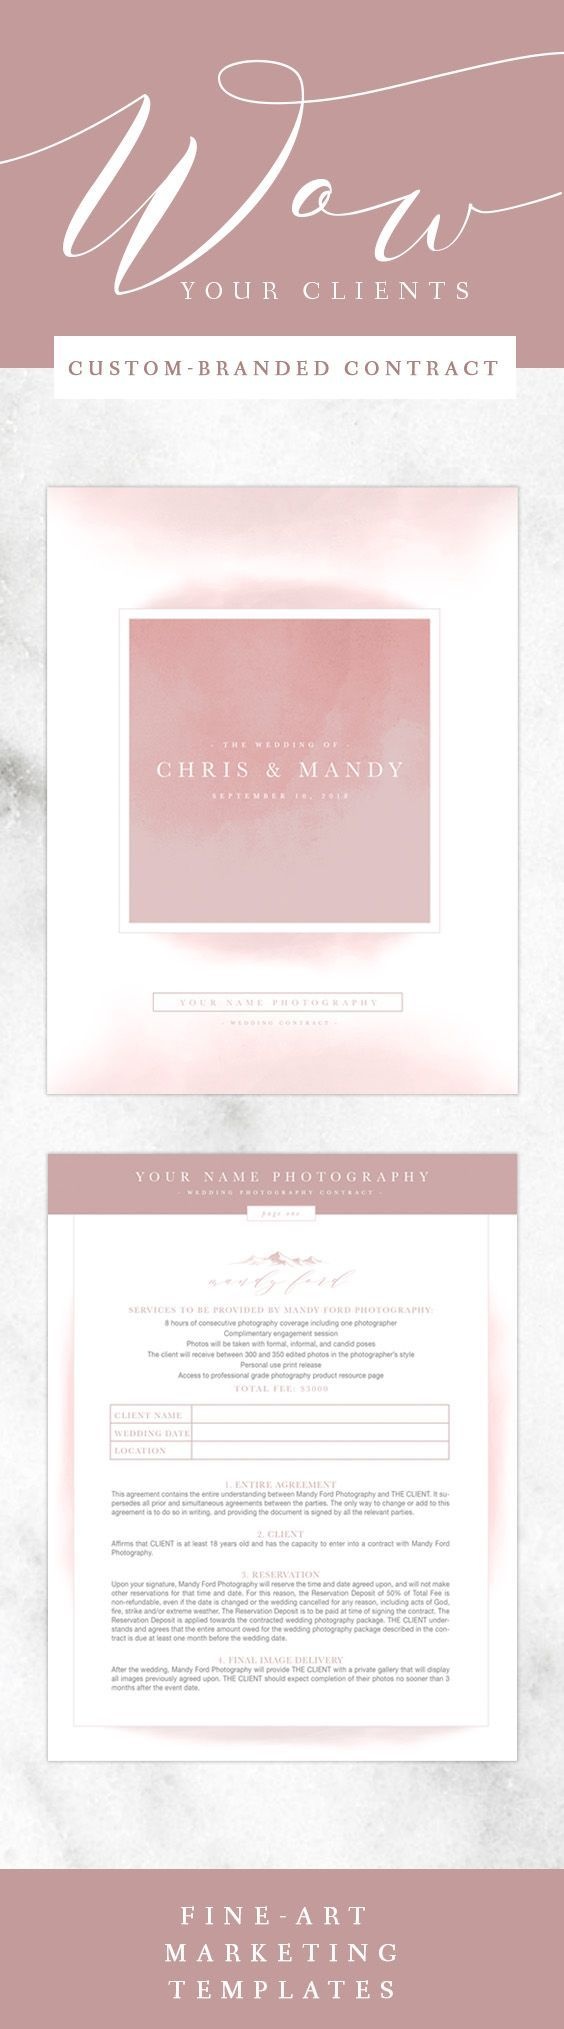 Best 25 wedding photography contract ideas on pinterest wedding photography contract custom branded marketing template dusty rose wedding photography contract custom branded marketing template dusty rose stopboris Image collections